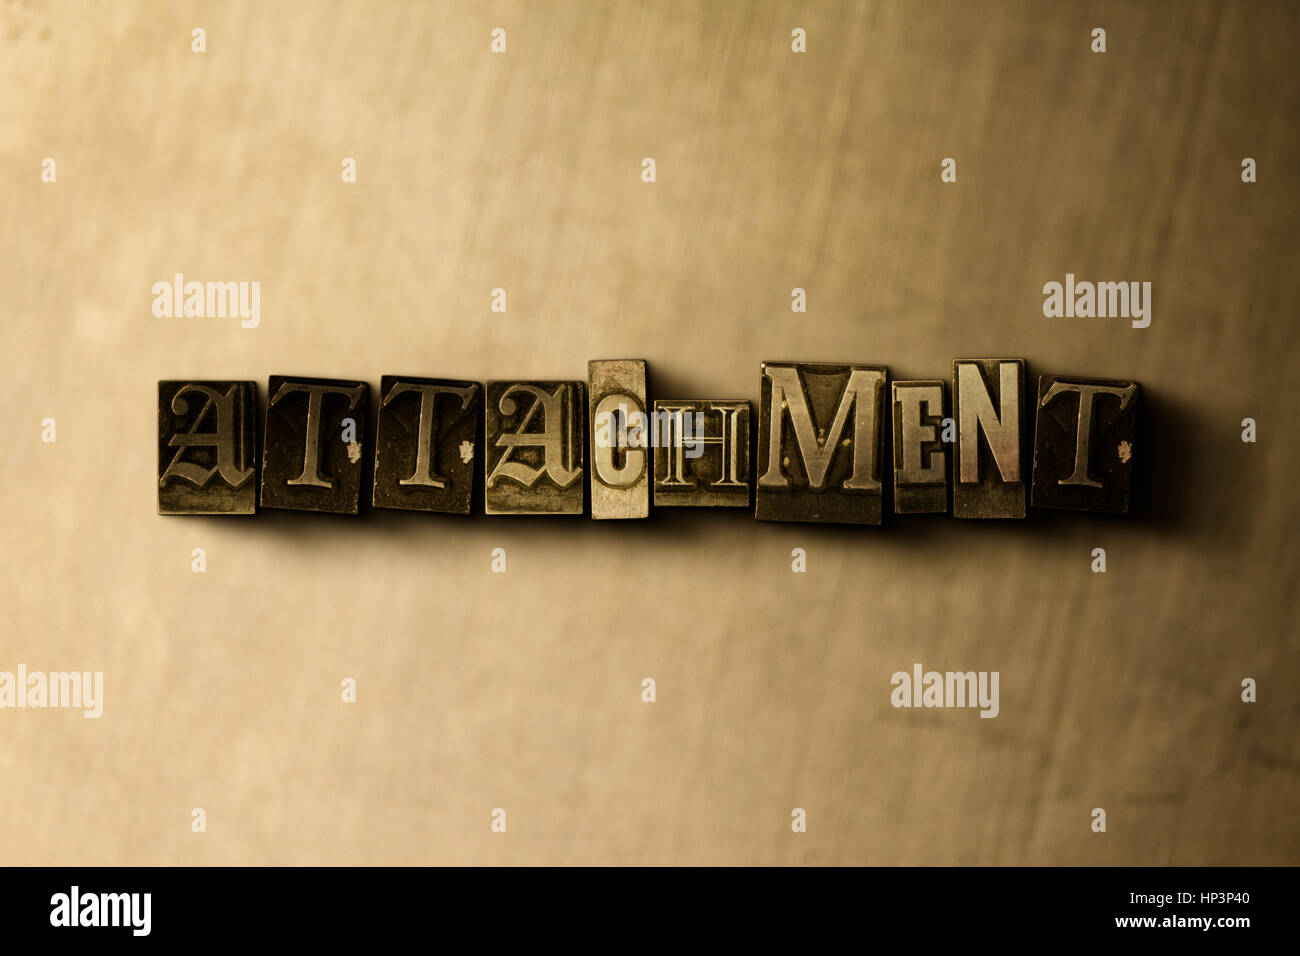 ATTACHMENT - close-up of grungy vintage typeset word on metal backdrop. Royalty free stock illustration.  Can be - Stock Image